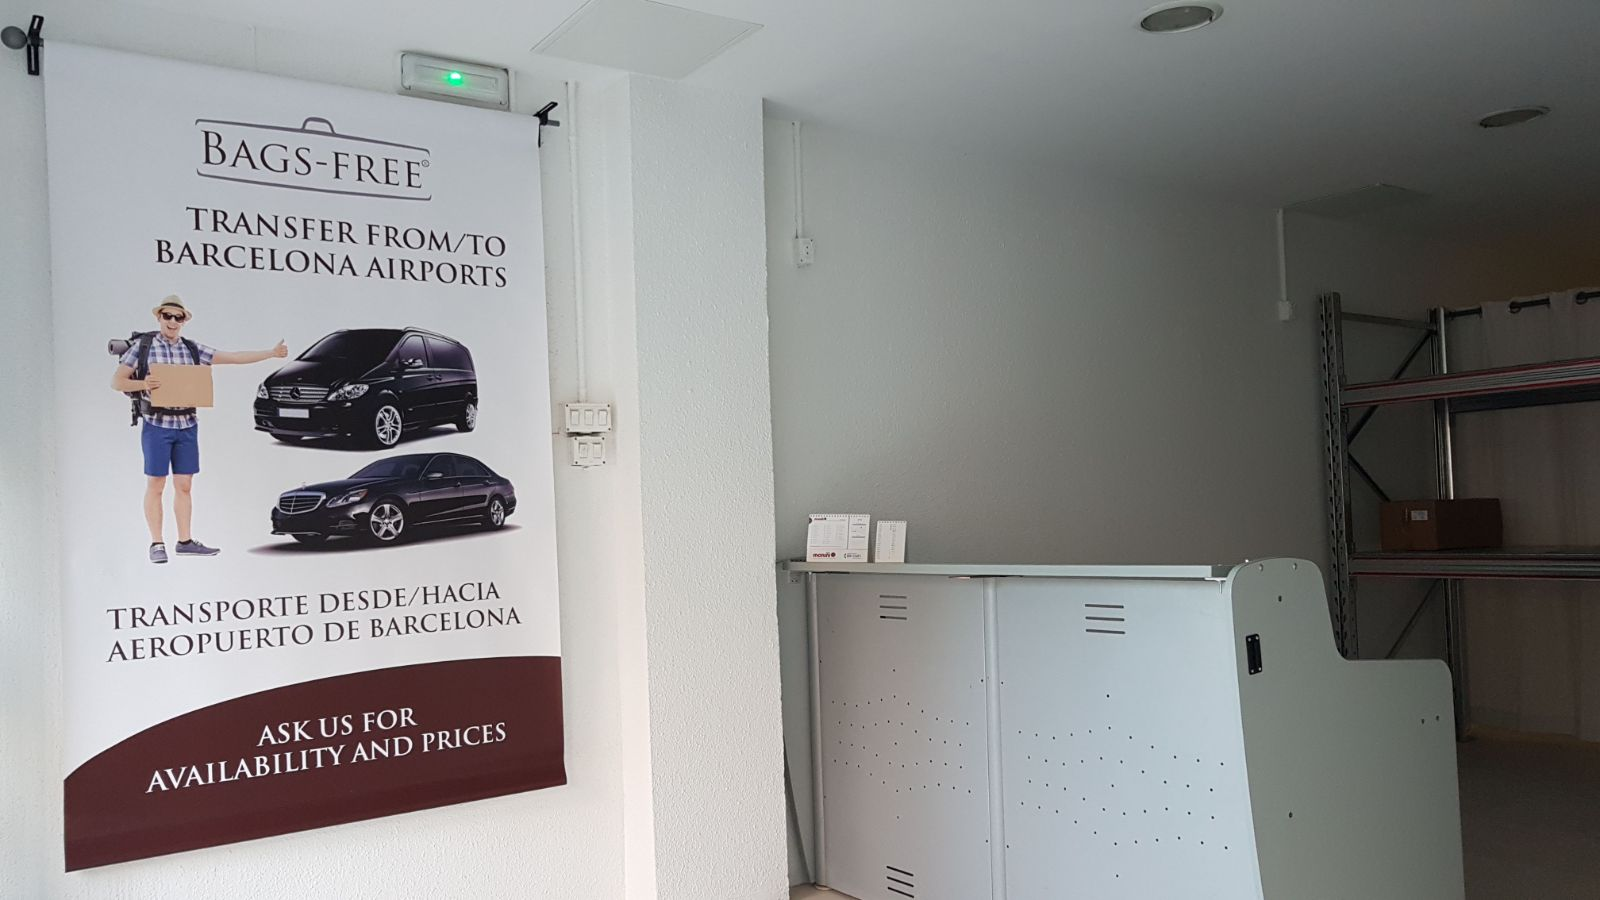 Barcelona, the first photos of the luggage storage #BagsFree #EasyInEurope